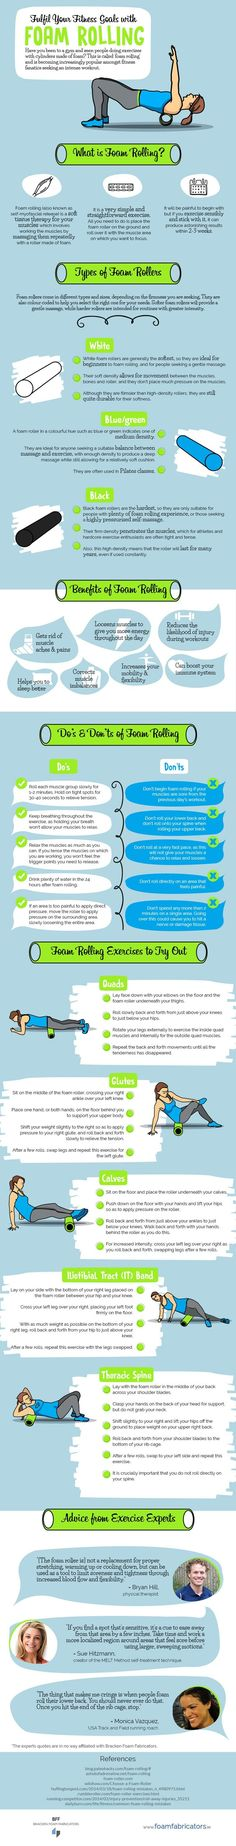 What you need to know about foam rolling! | Fit Bottomed Girls